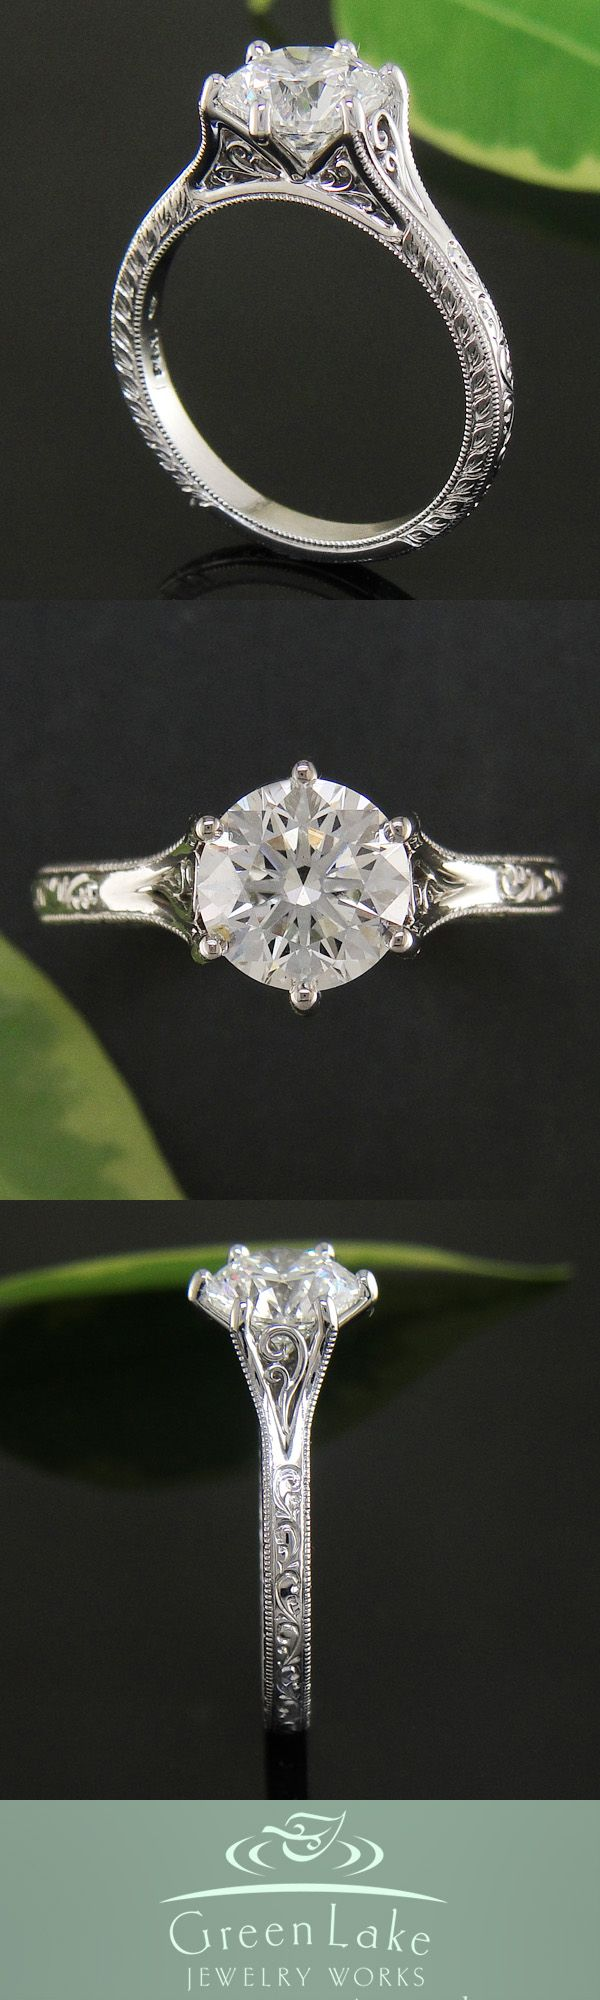 Antique style diamond and platinum ring with old world hand engraved details